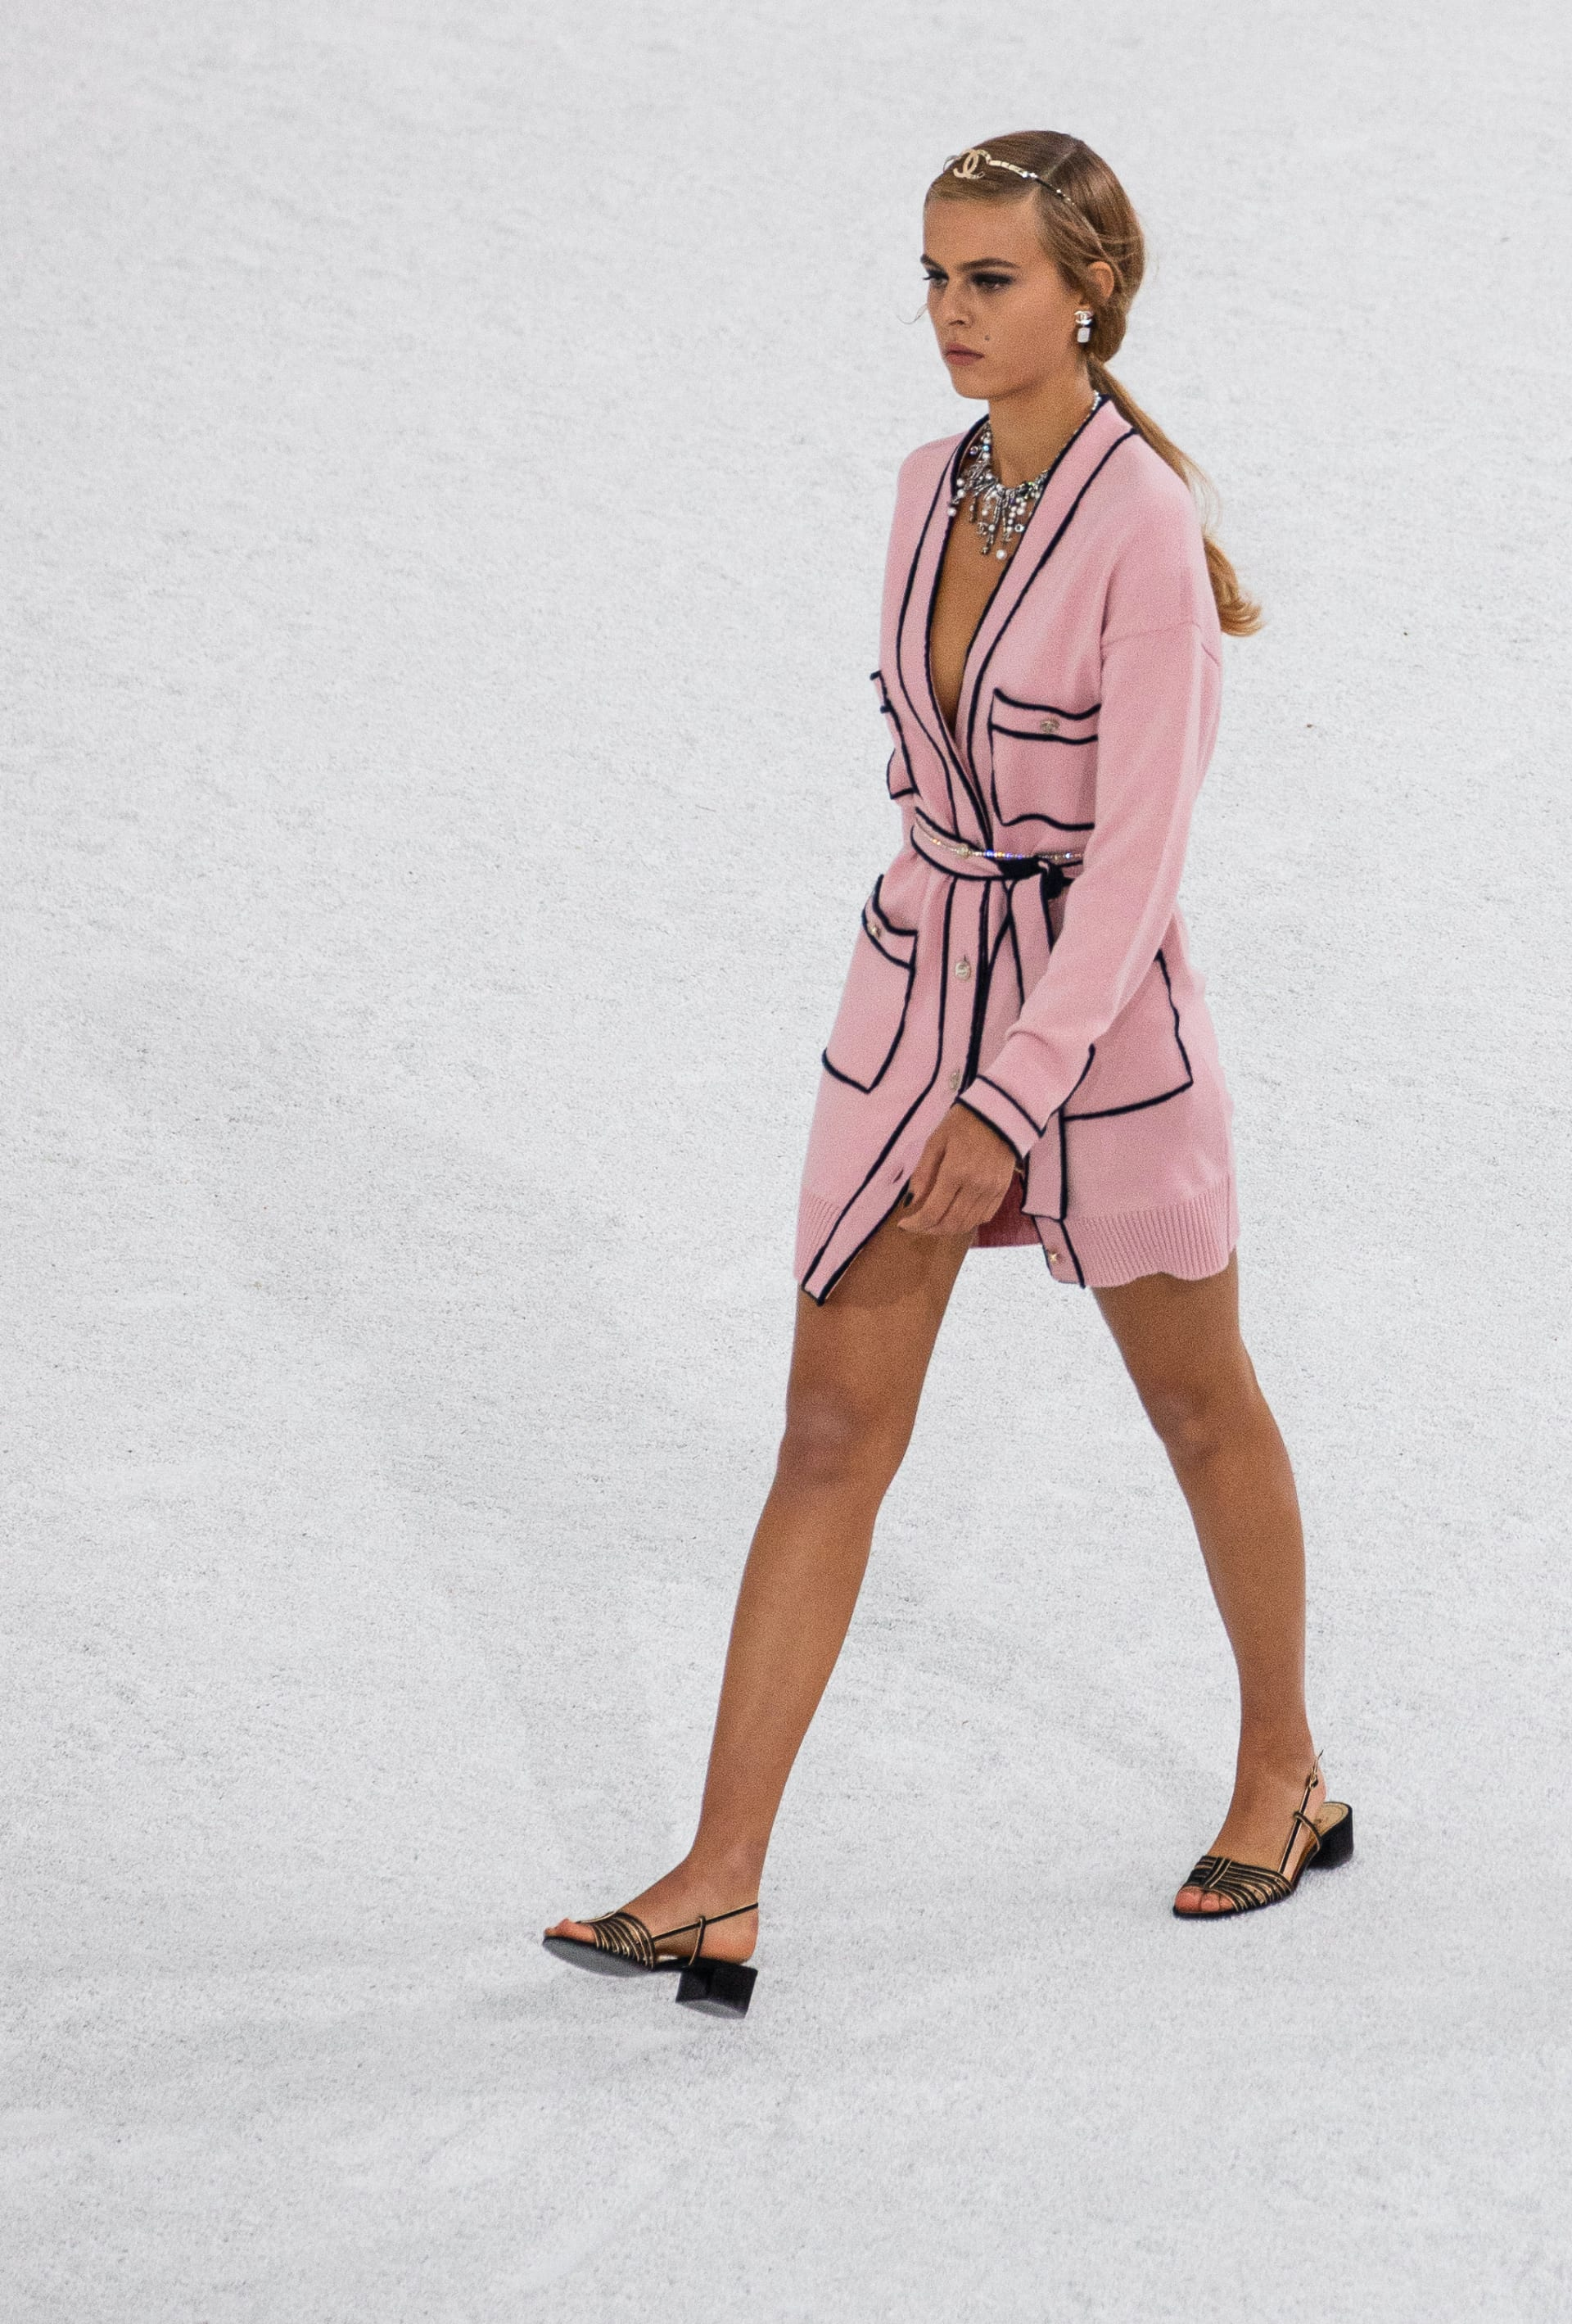 View 2 - Look 12 - Spring-Summer 2021 - see full sized version